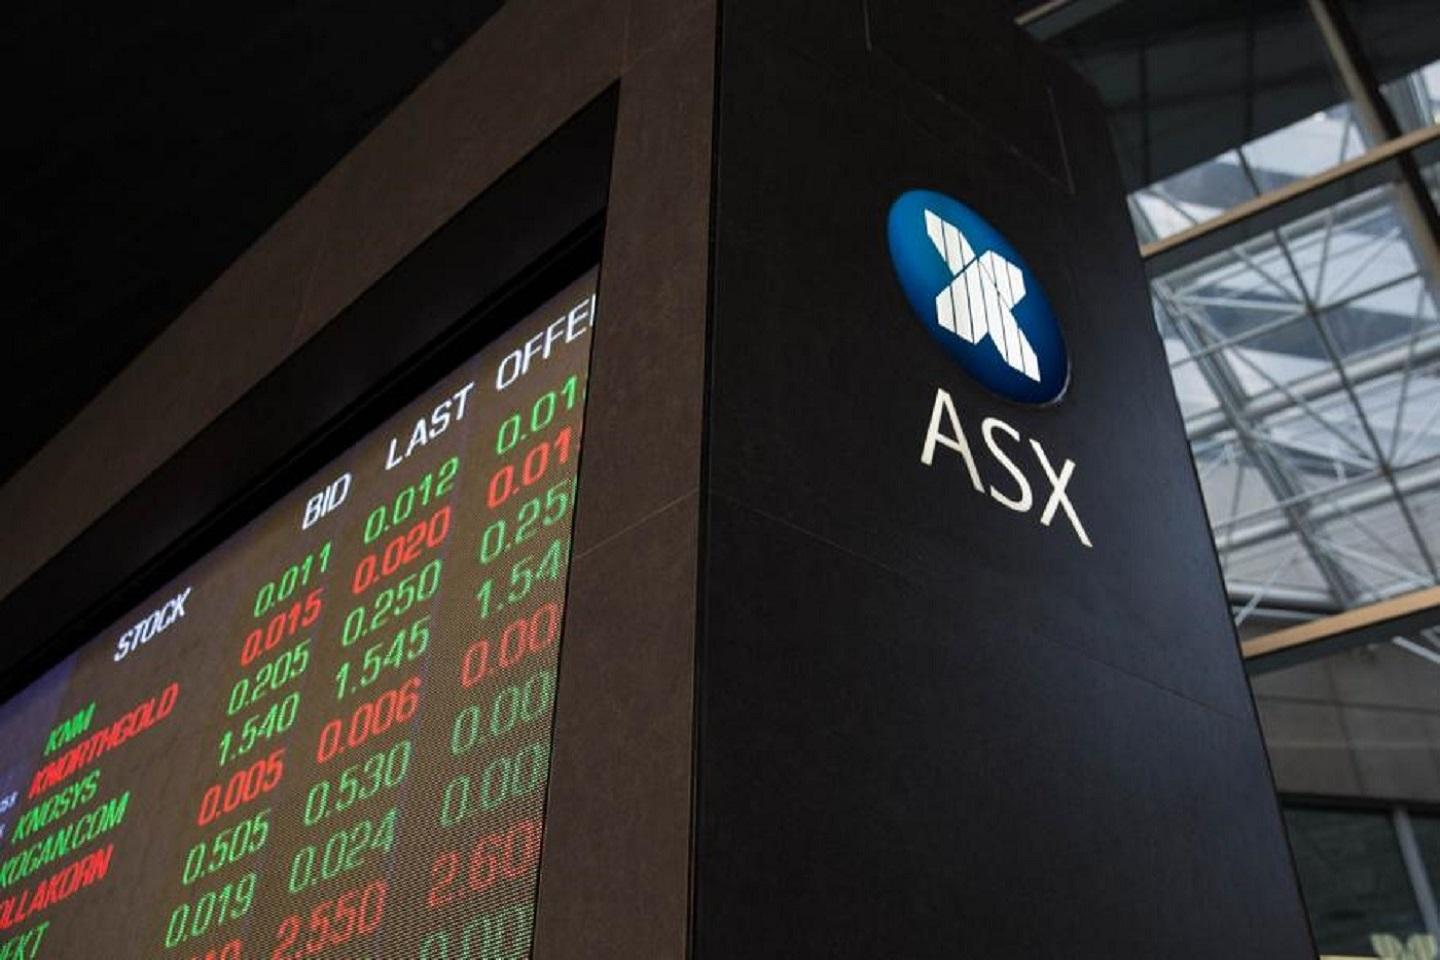 'Blood in the gutters' as ASX drops again